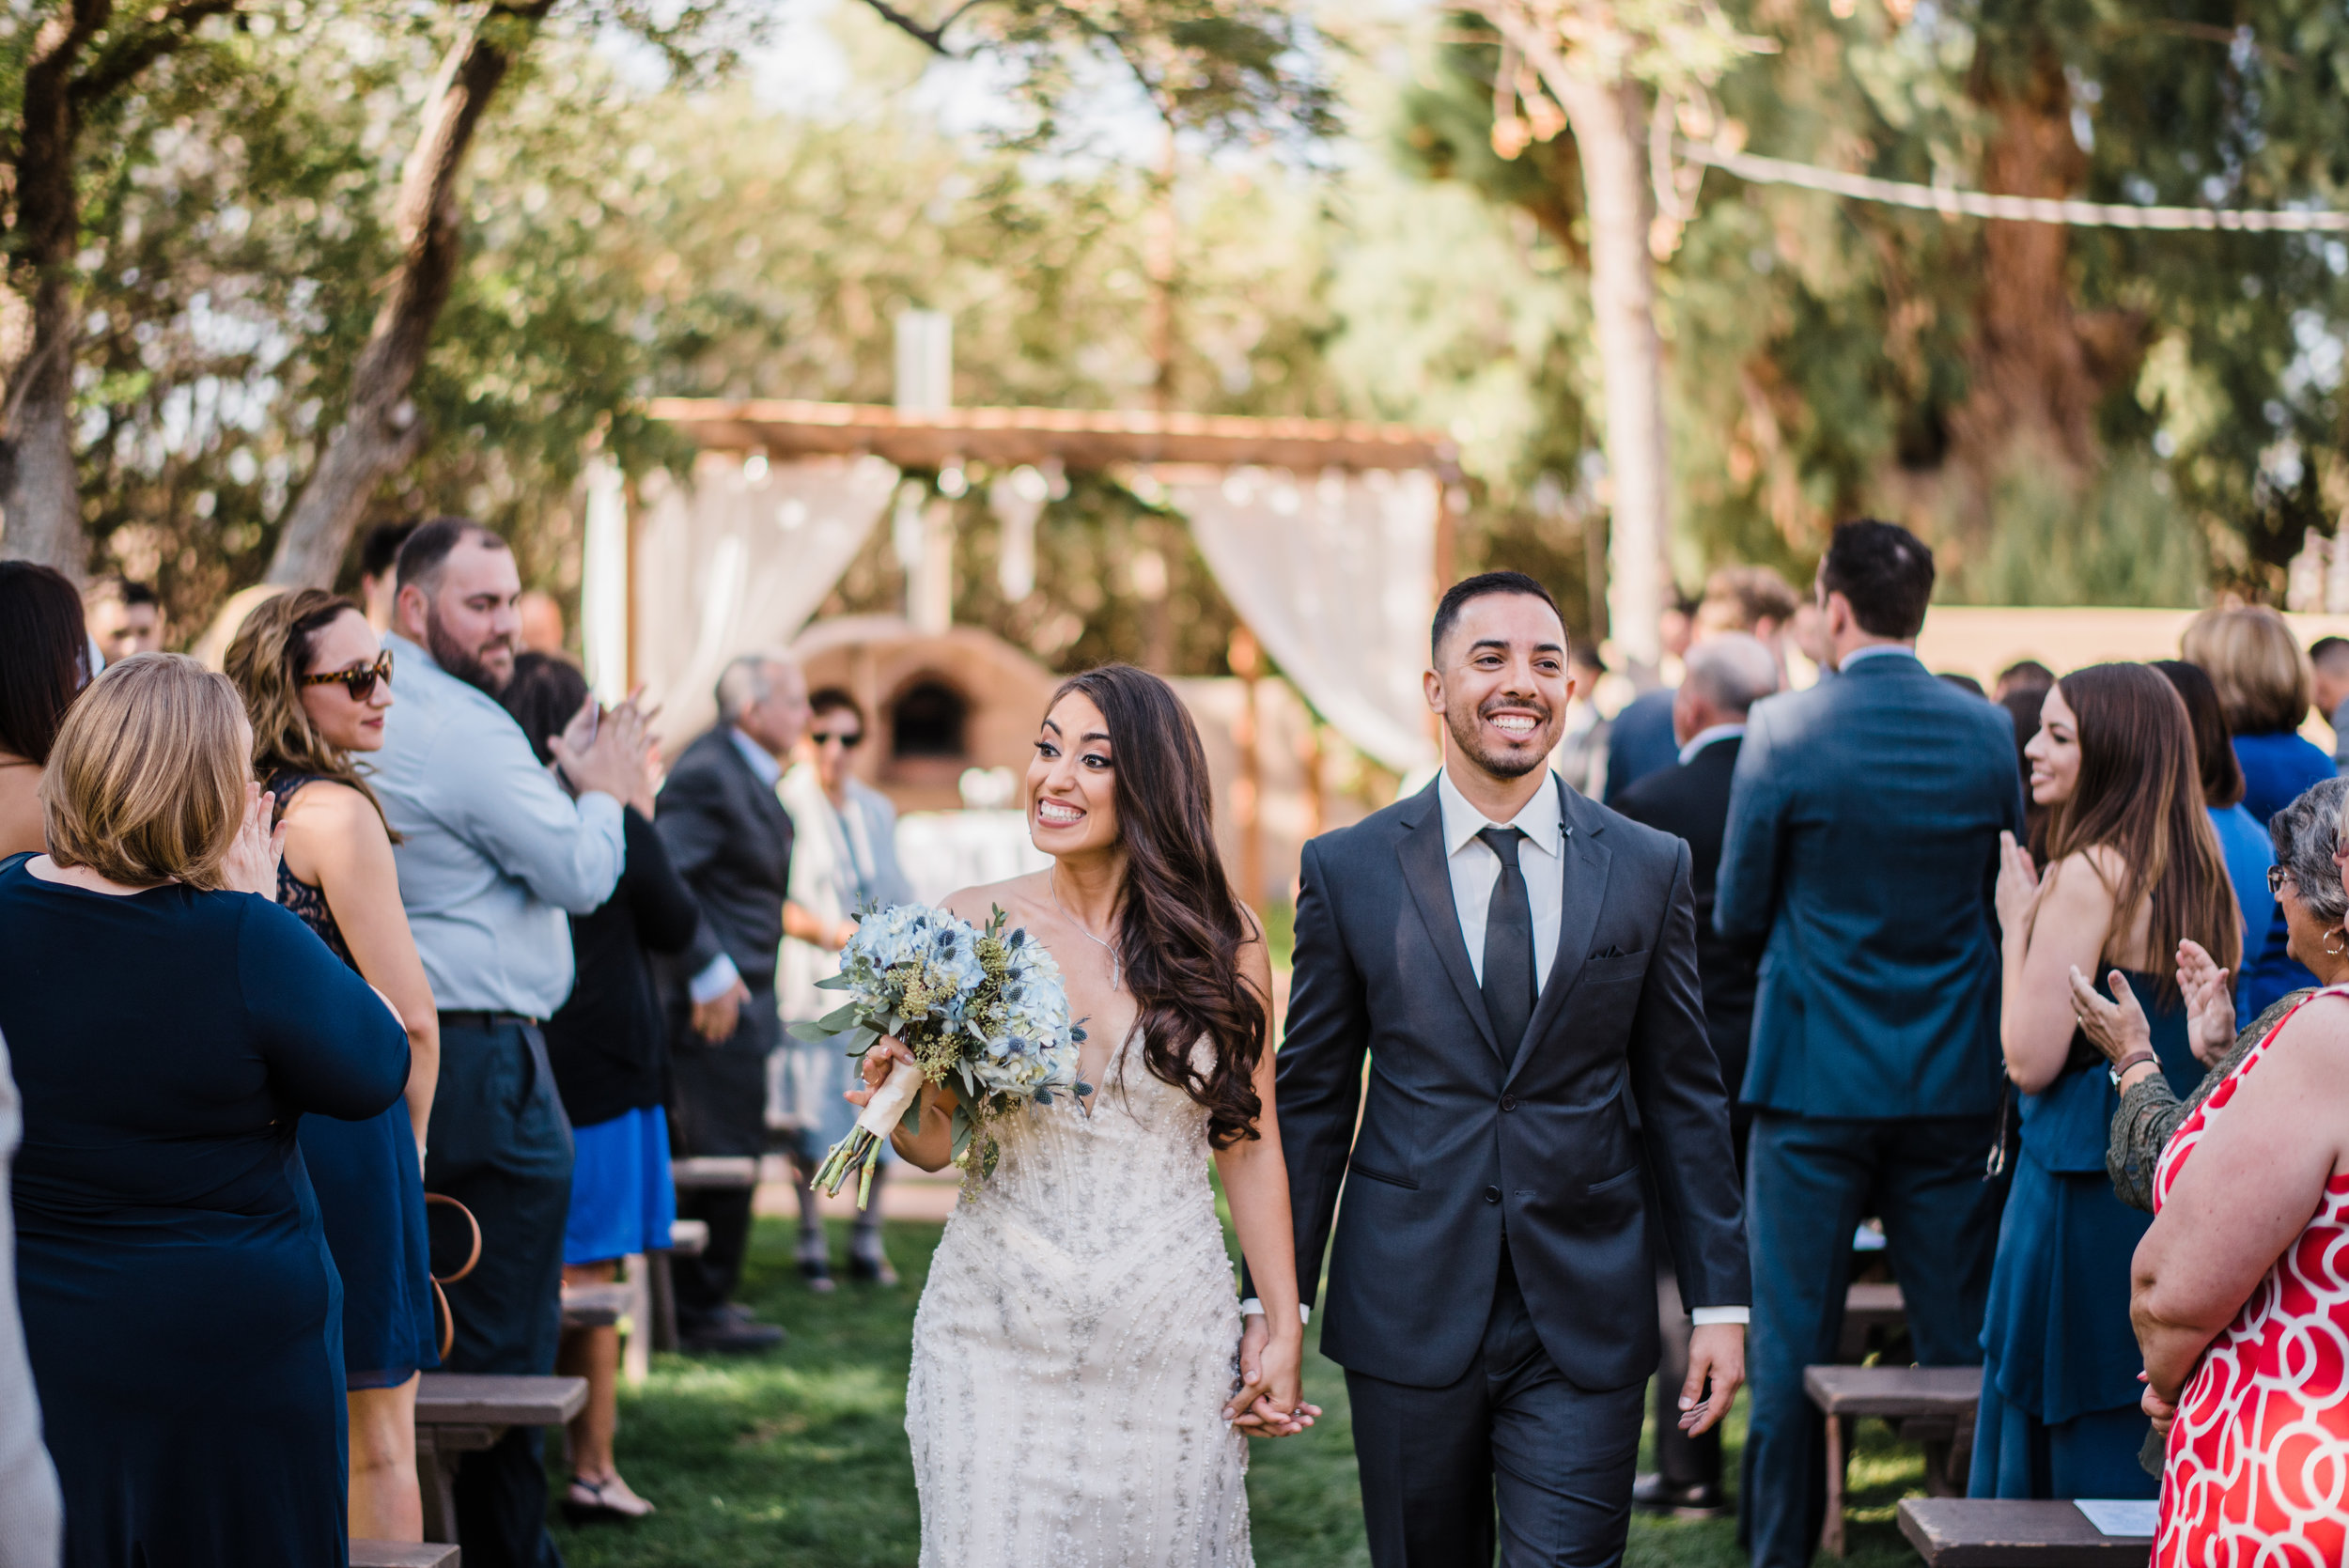 bride groom walk down aisle bride groom just married farm wedding outdoor wedding happy bride and groom Grey Key Events photo by Josh Snyder Photography.JPG